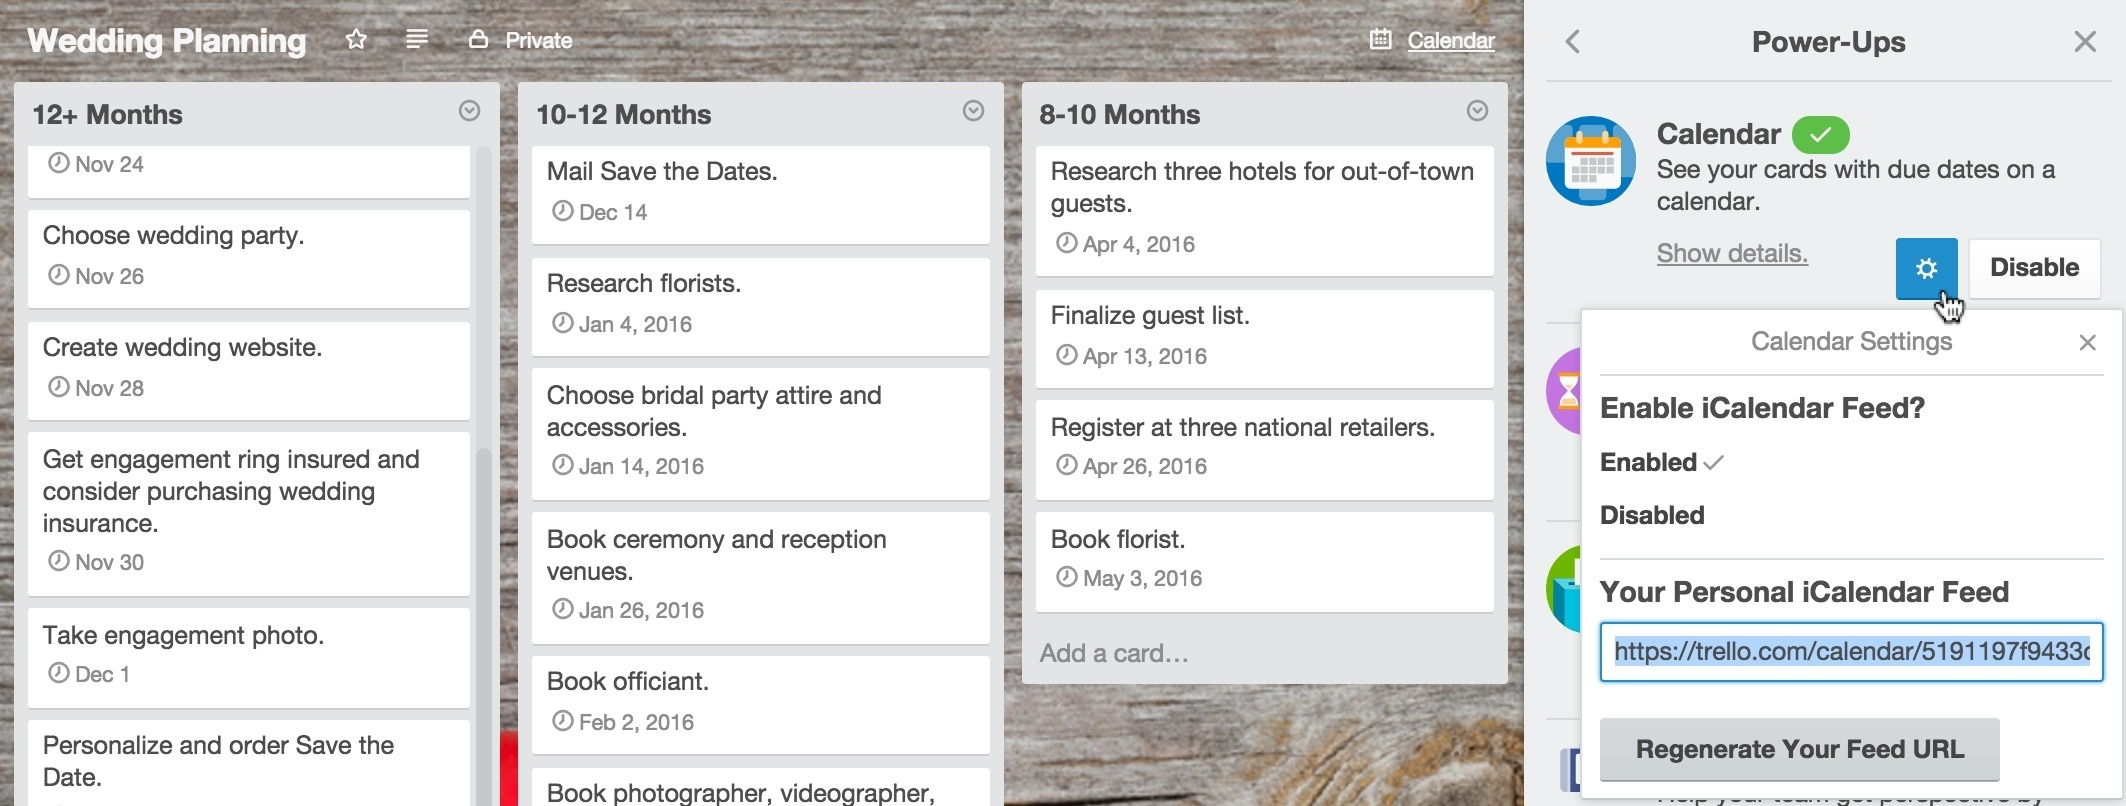 Adding A Calendar To Your Trello Boards in Calenders And To Keep Up Withstuff